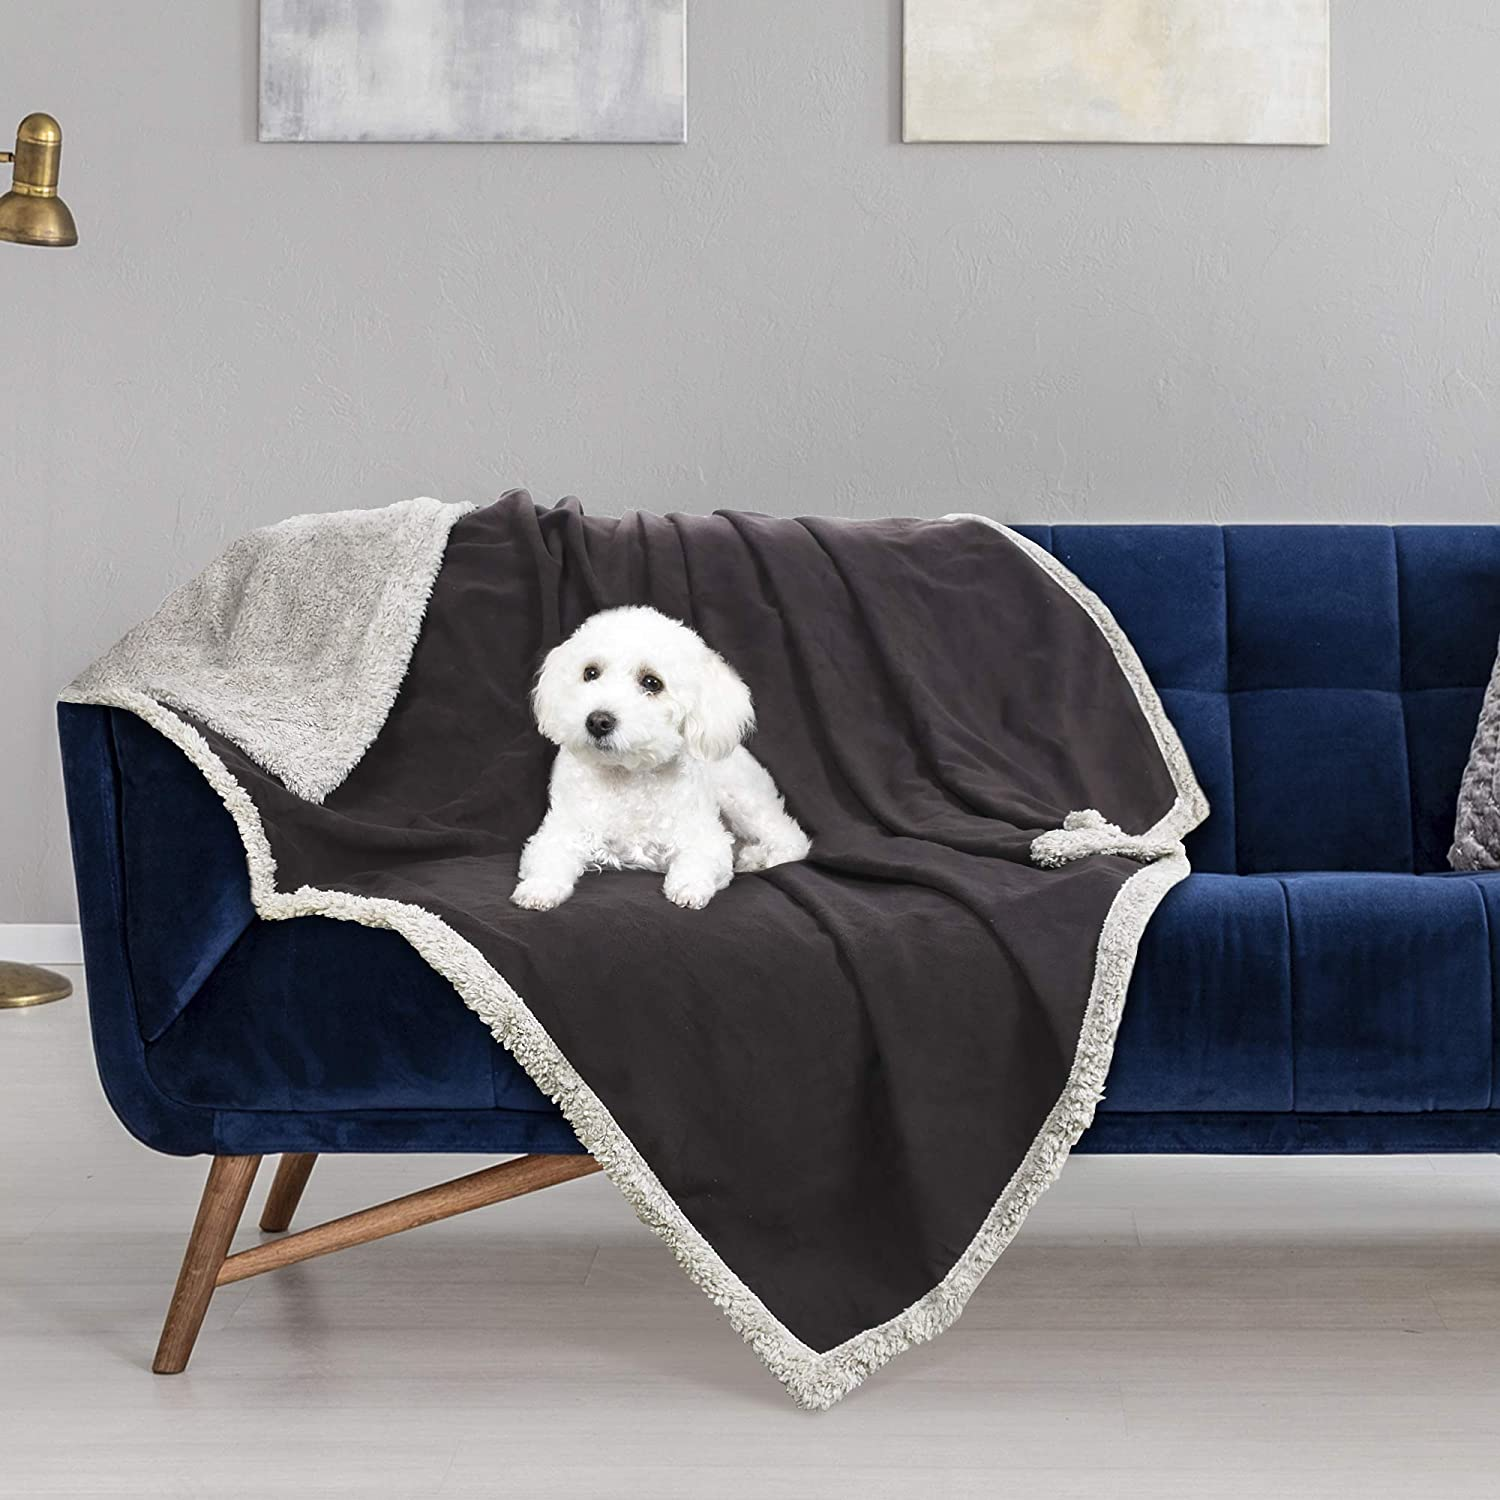 Best Pet Blanket For Couch